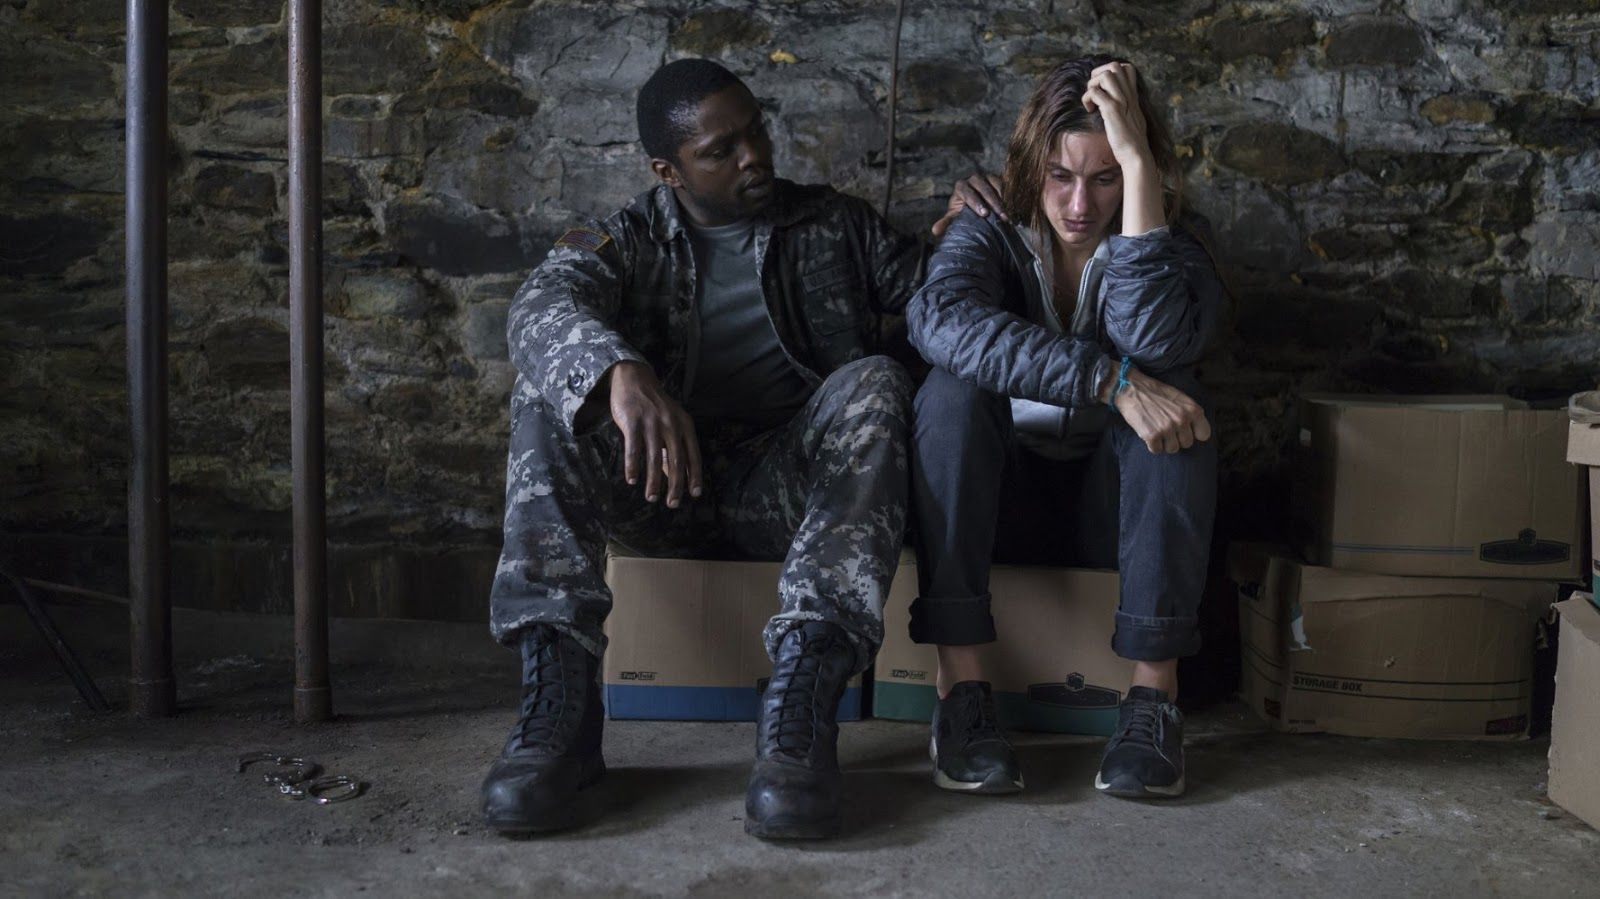 American Horror Story Cenas Quentes okezie morro and danica curcic in the mist tv series (9) em